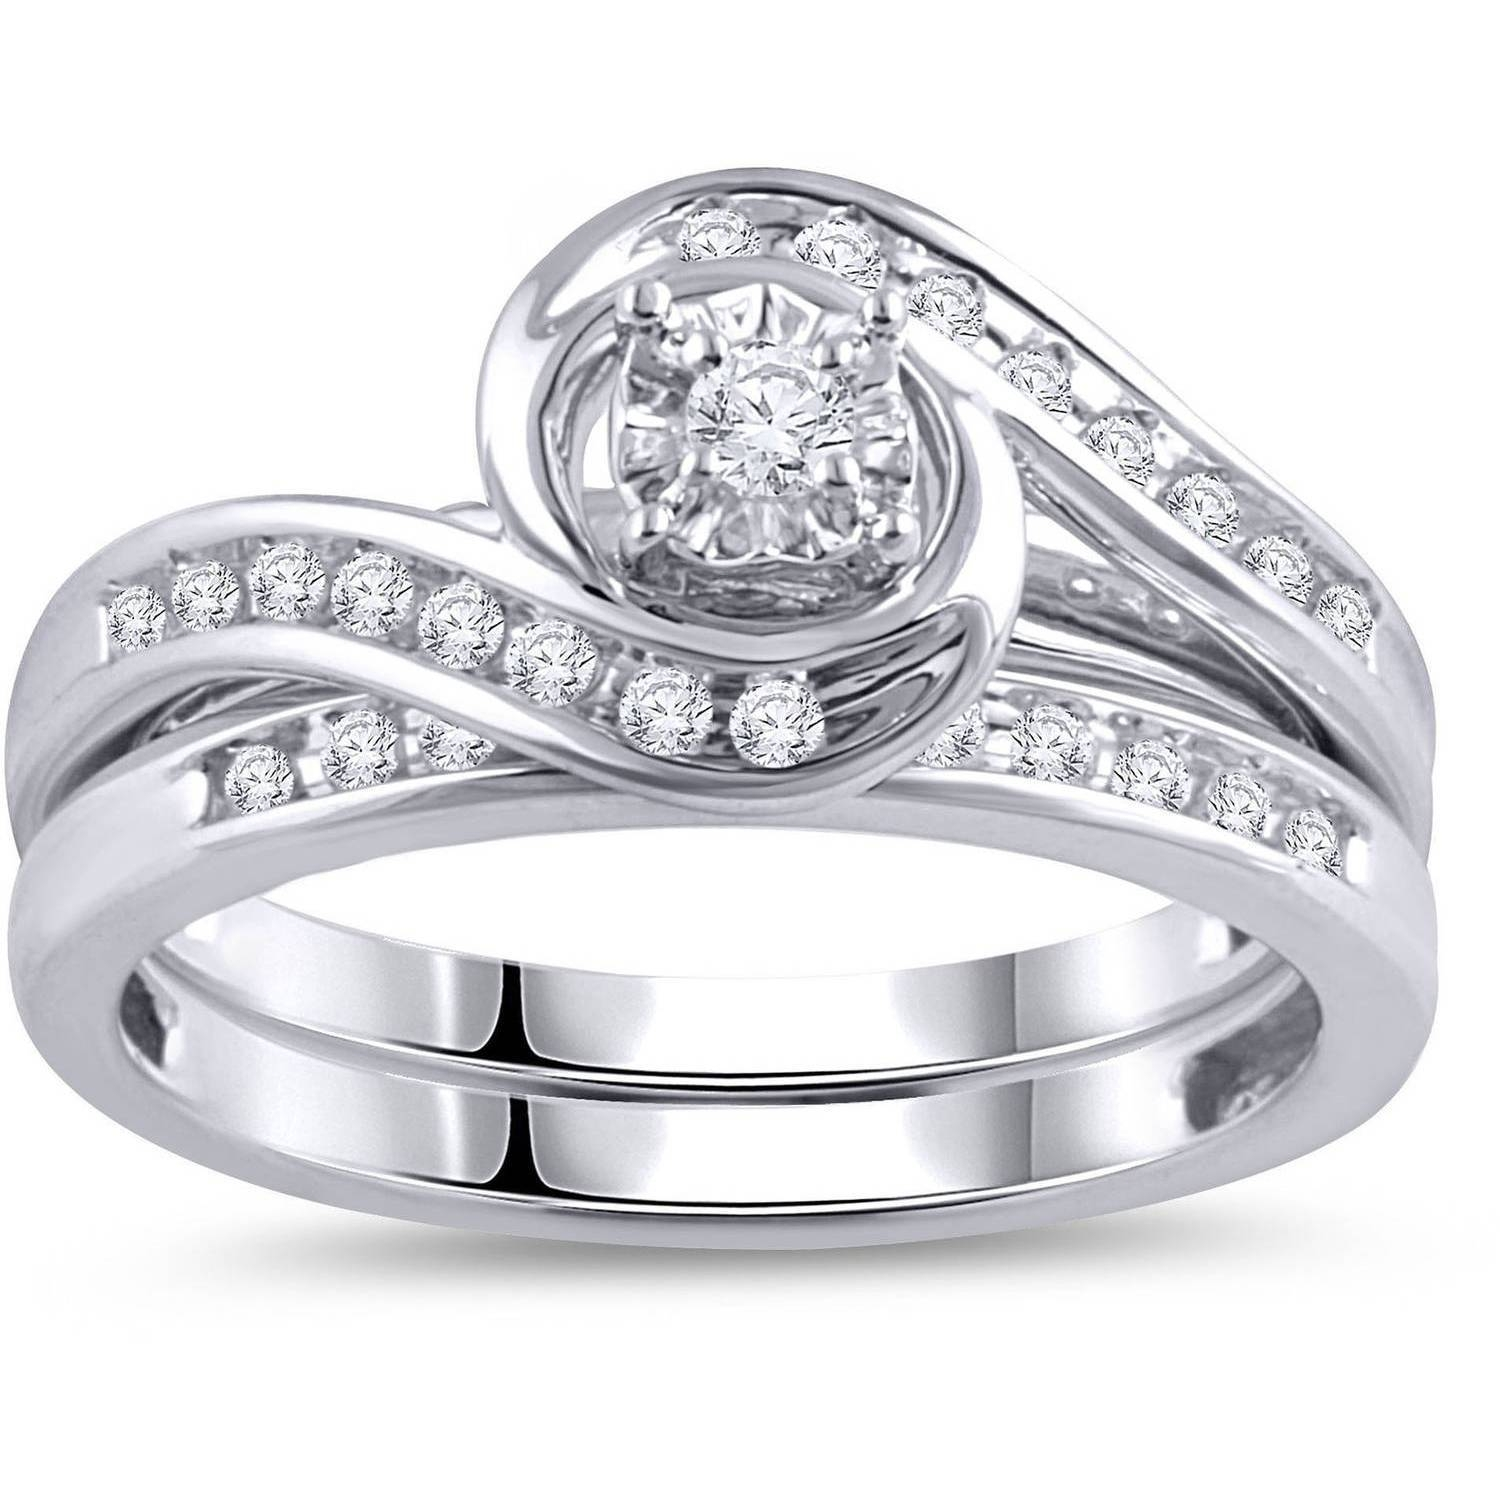 Miabella 1/10 Carat T.w. Diamond And 1 Carat T.g.w. Created White Pertaining To Walmart Mens Engagement Rings (Gallery 15 of 15)